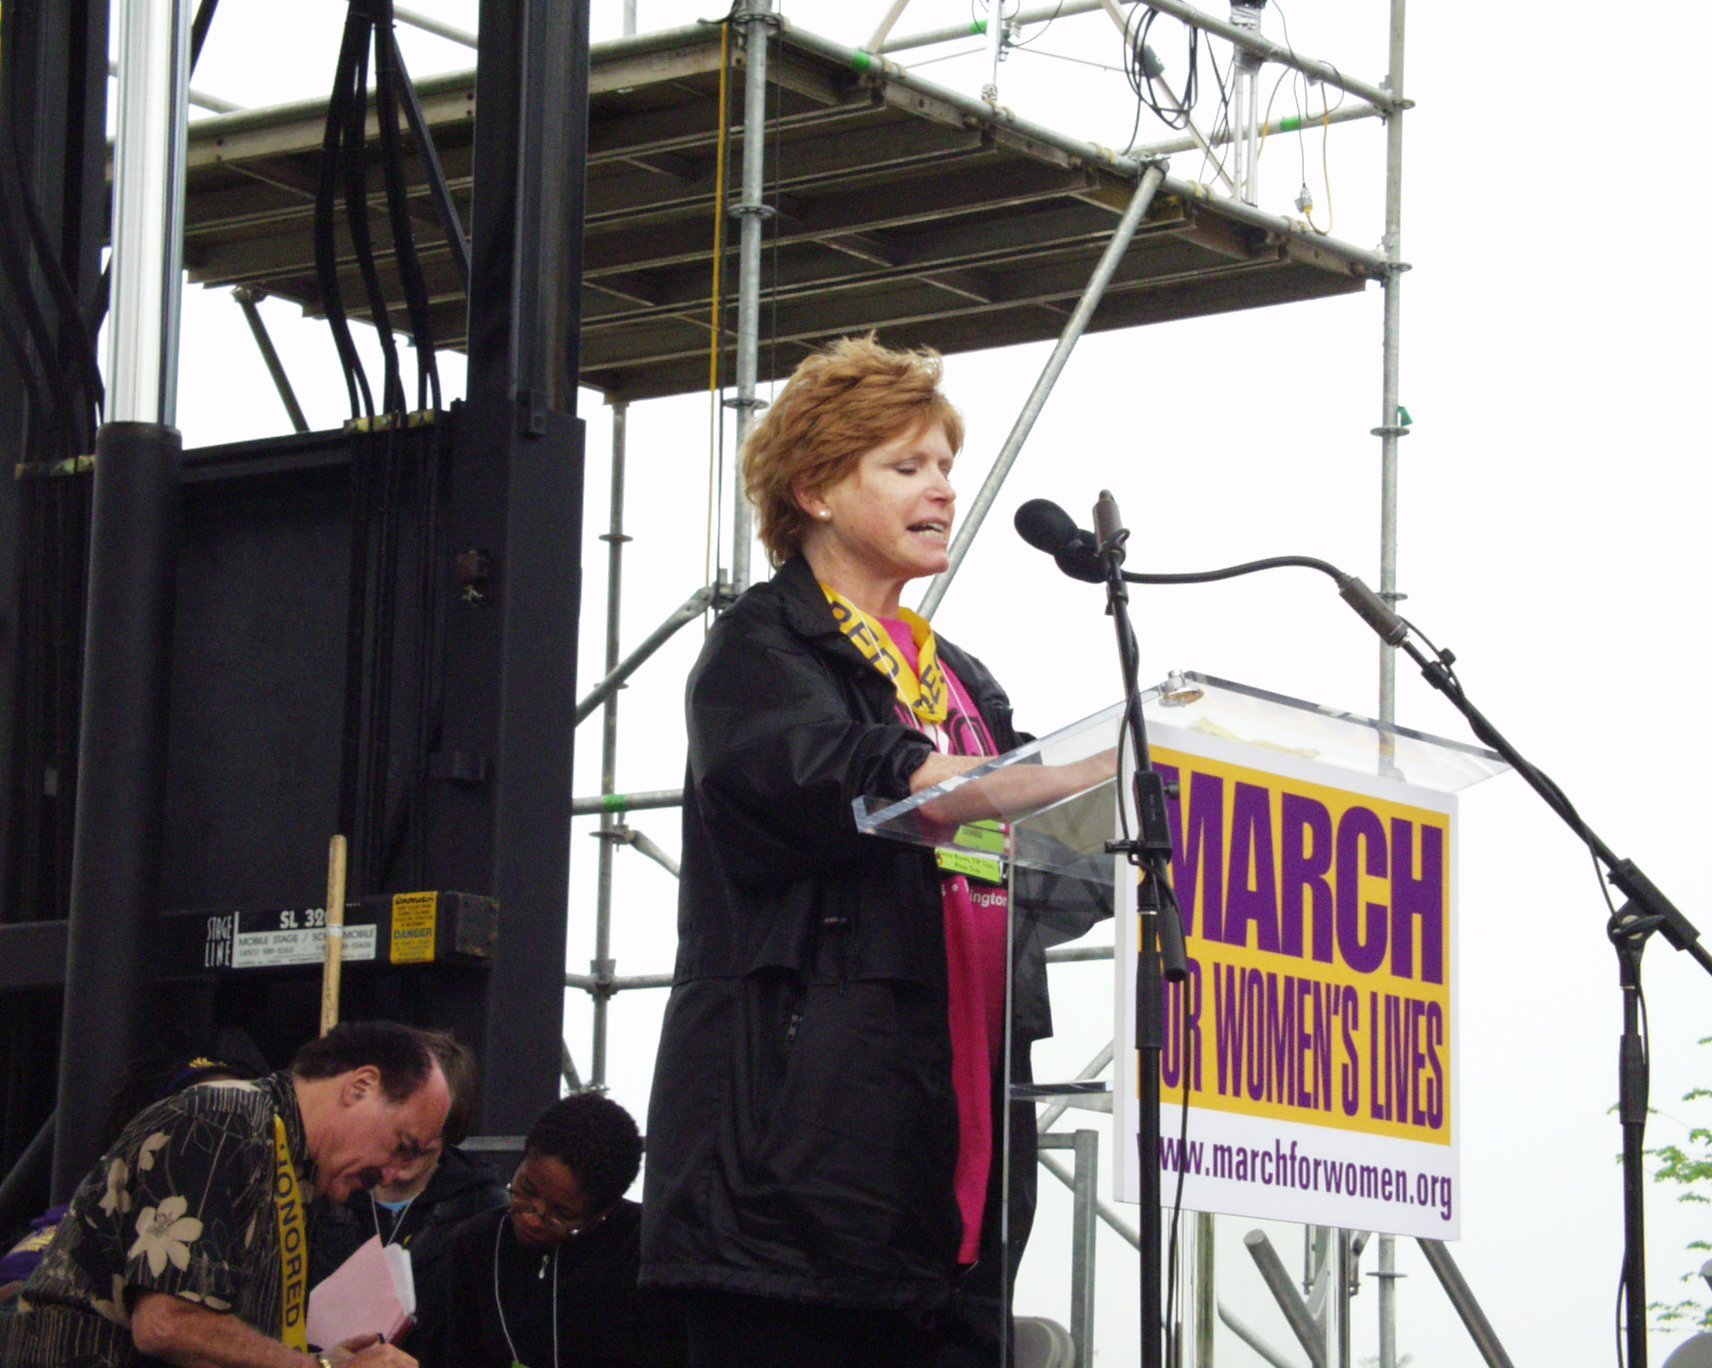 Bonnie Franklin speaking to crowd at March For Women's Lives in 2004. | Source: Wikimedia Commons